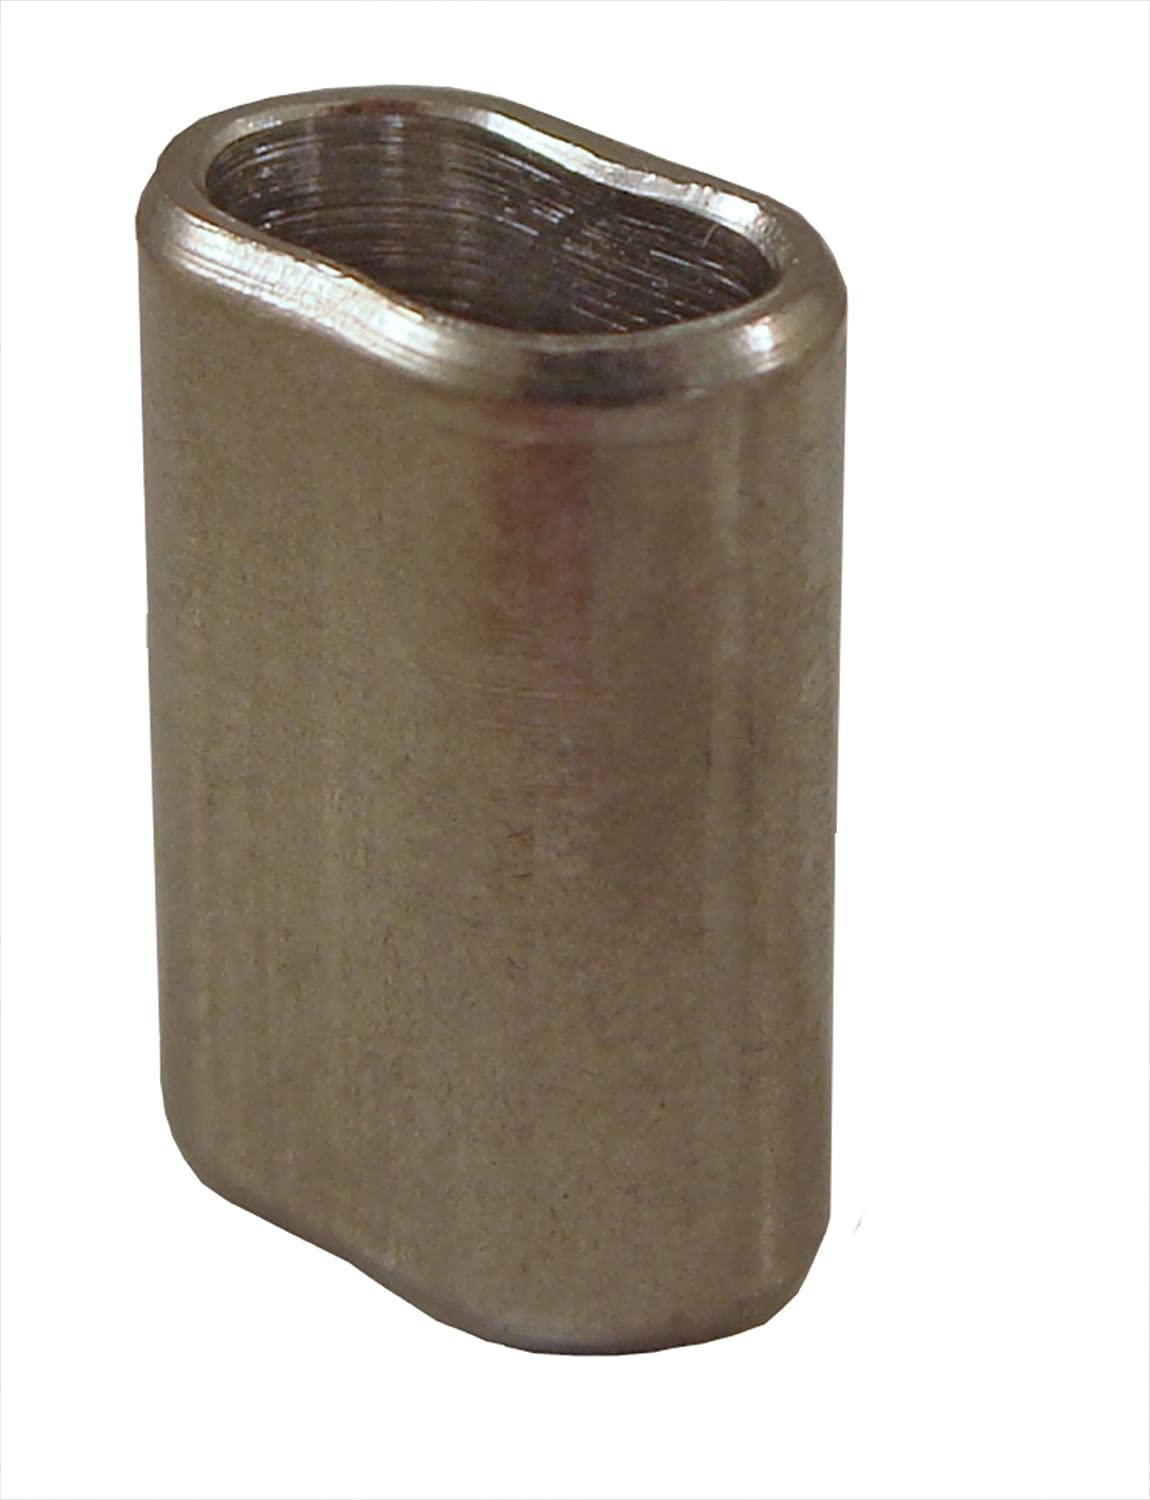 Loos Cableware SL11-8 Stainless Steel Crimping Sleeve for 1/4' Diameter Wire Rope Loos & Co